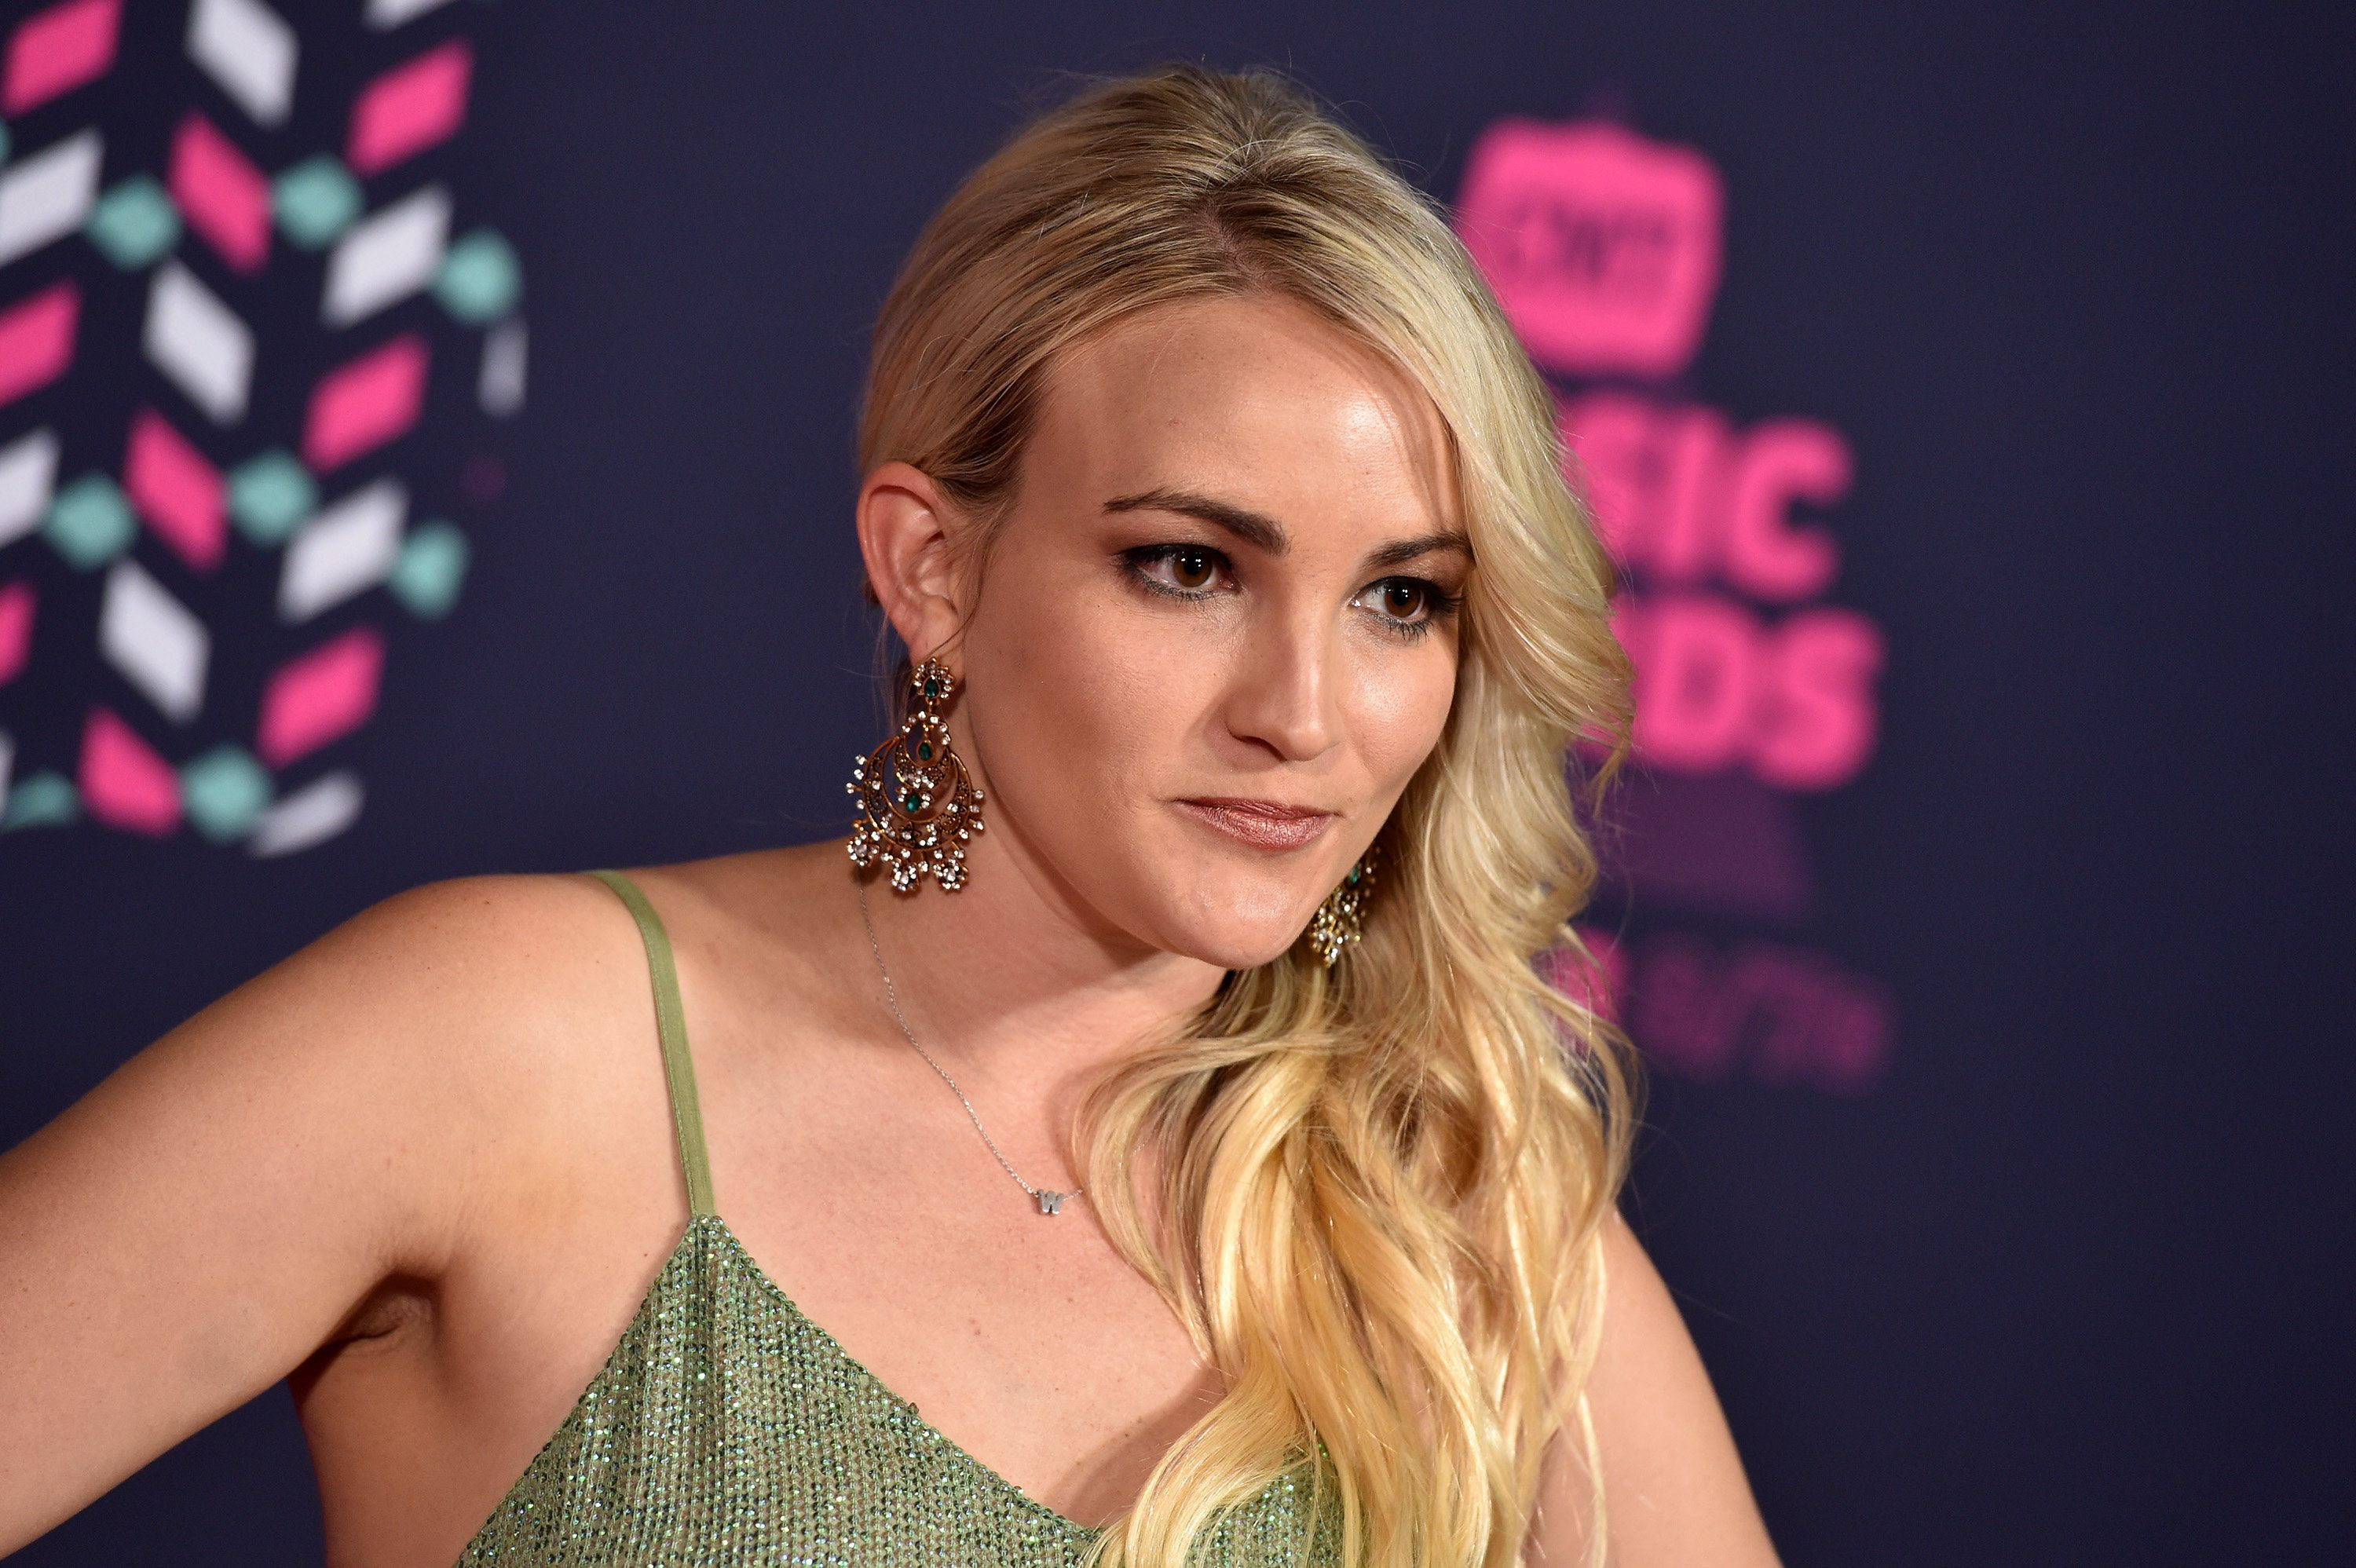 NASHVILLE, TN - JUNE 08:  Jamie Lynn Spears attends the 2016 CMT Music awards at the Bridgestone Arena on June 8, 2016 in Nashville, Tennessee.  (Photo by John Shearer/WireImage)